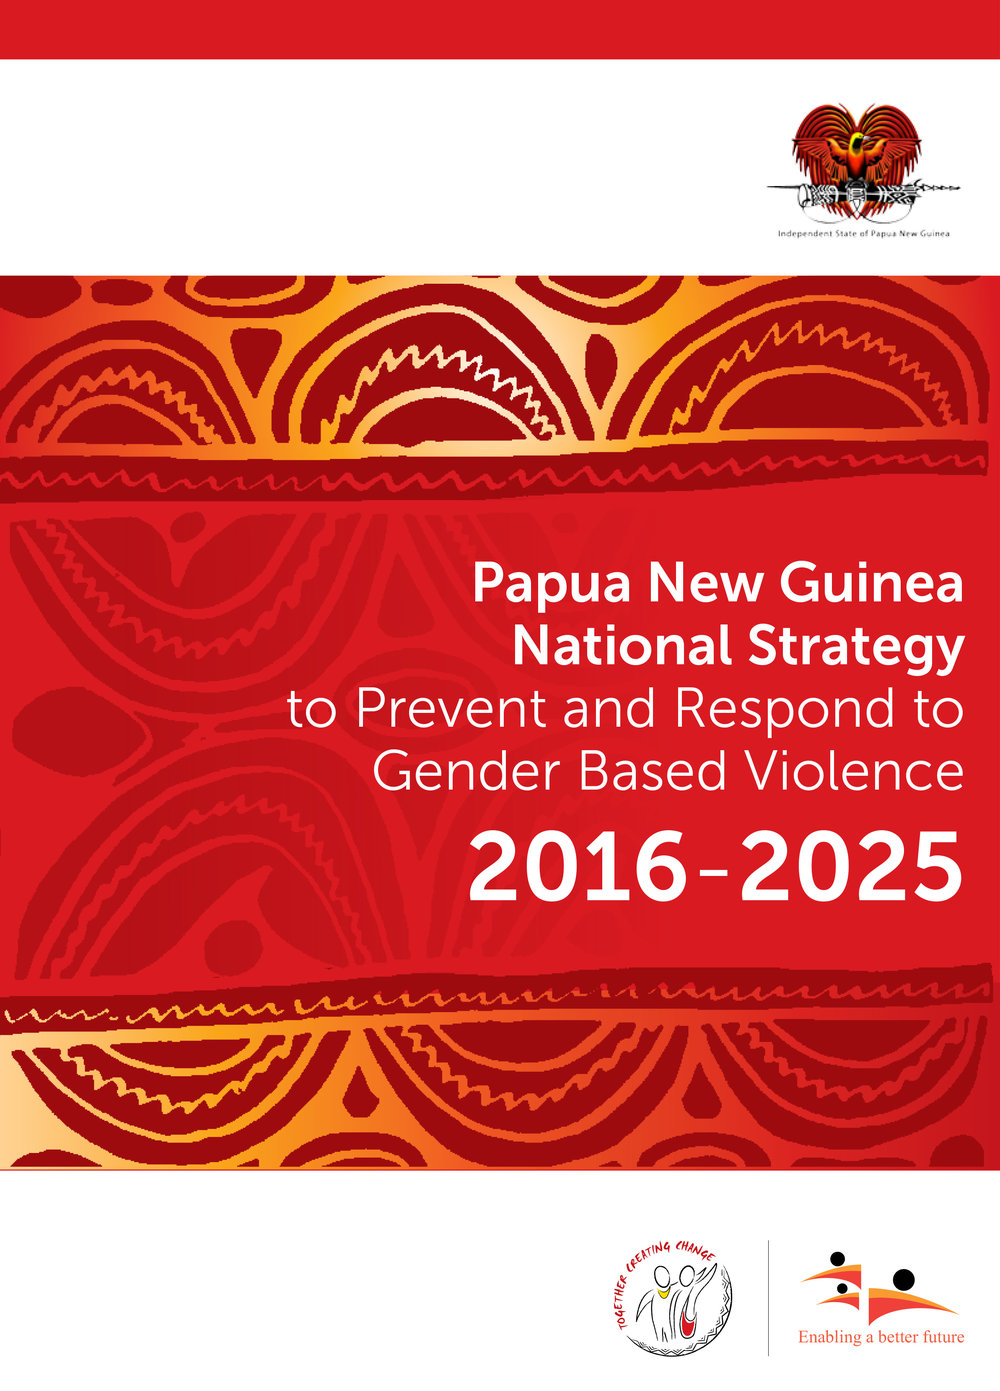 PNG GBV_Strategy 2016-2025_150816_FINAL-1.jpg